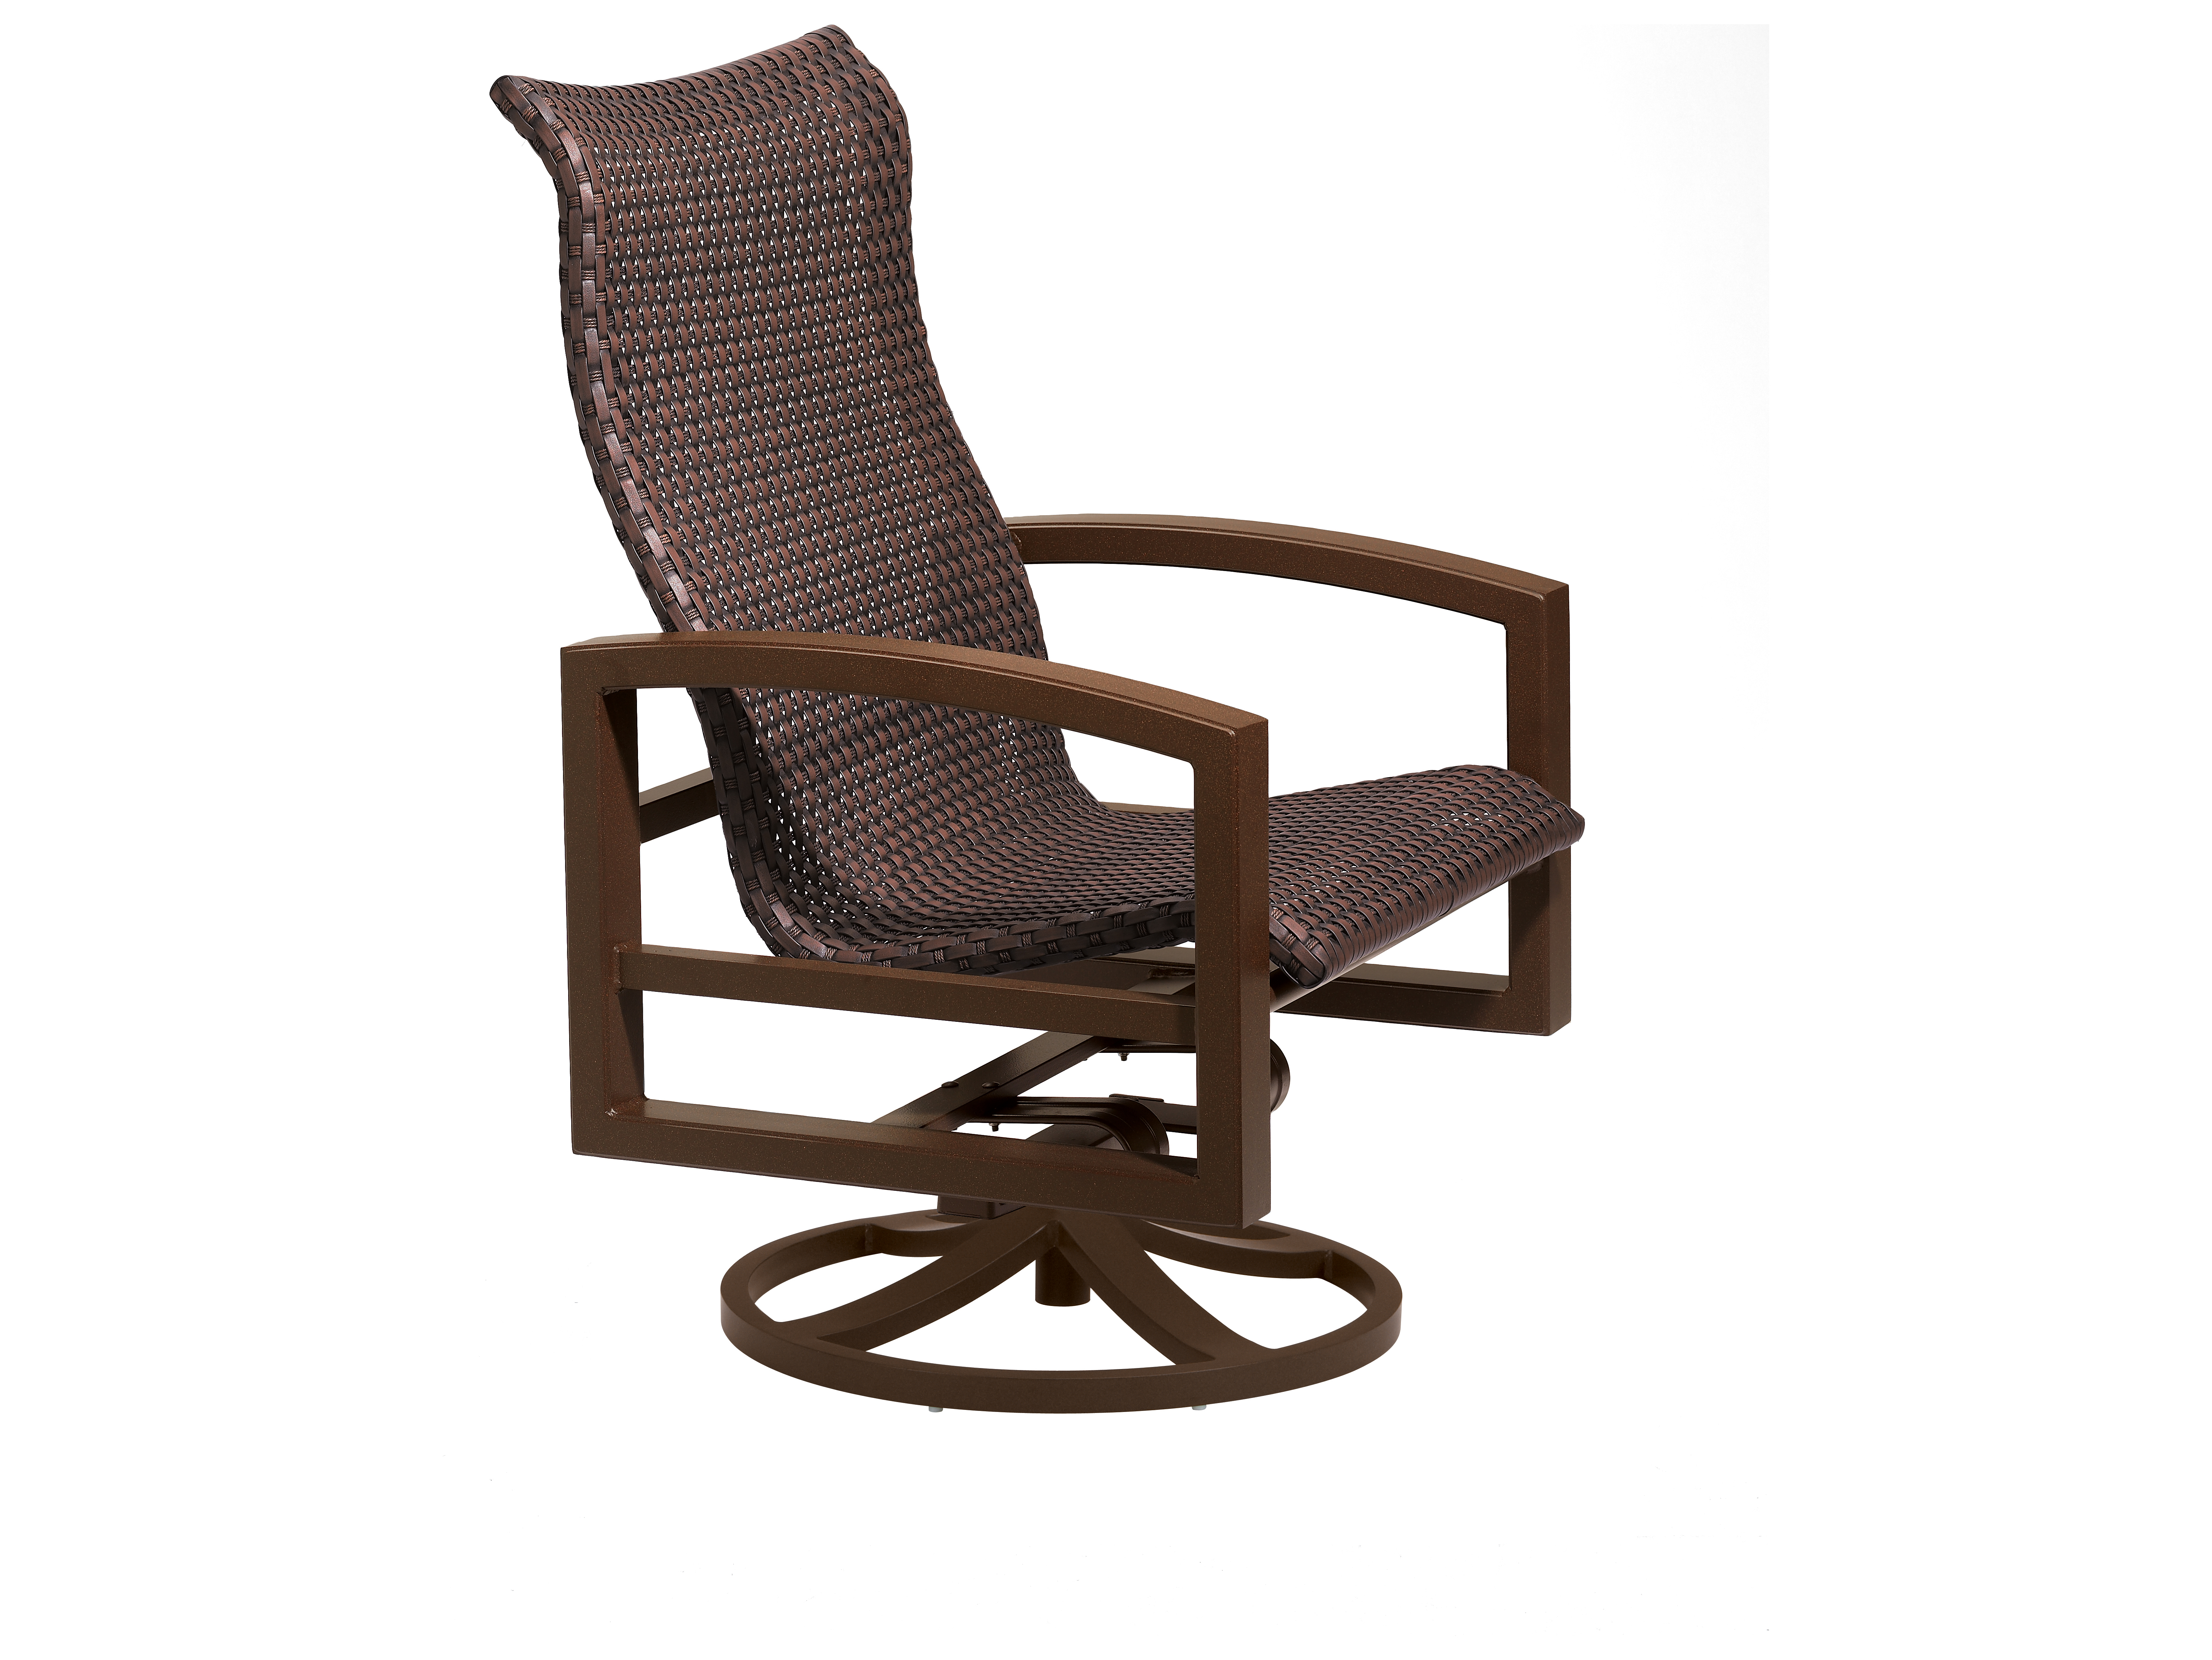 tropitone lounge chairs office chair design lakeside woven swivel action